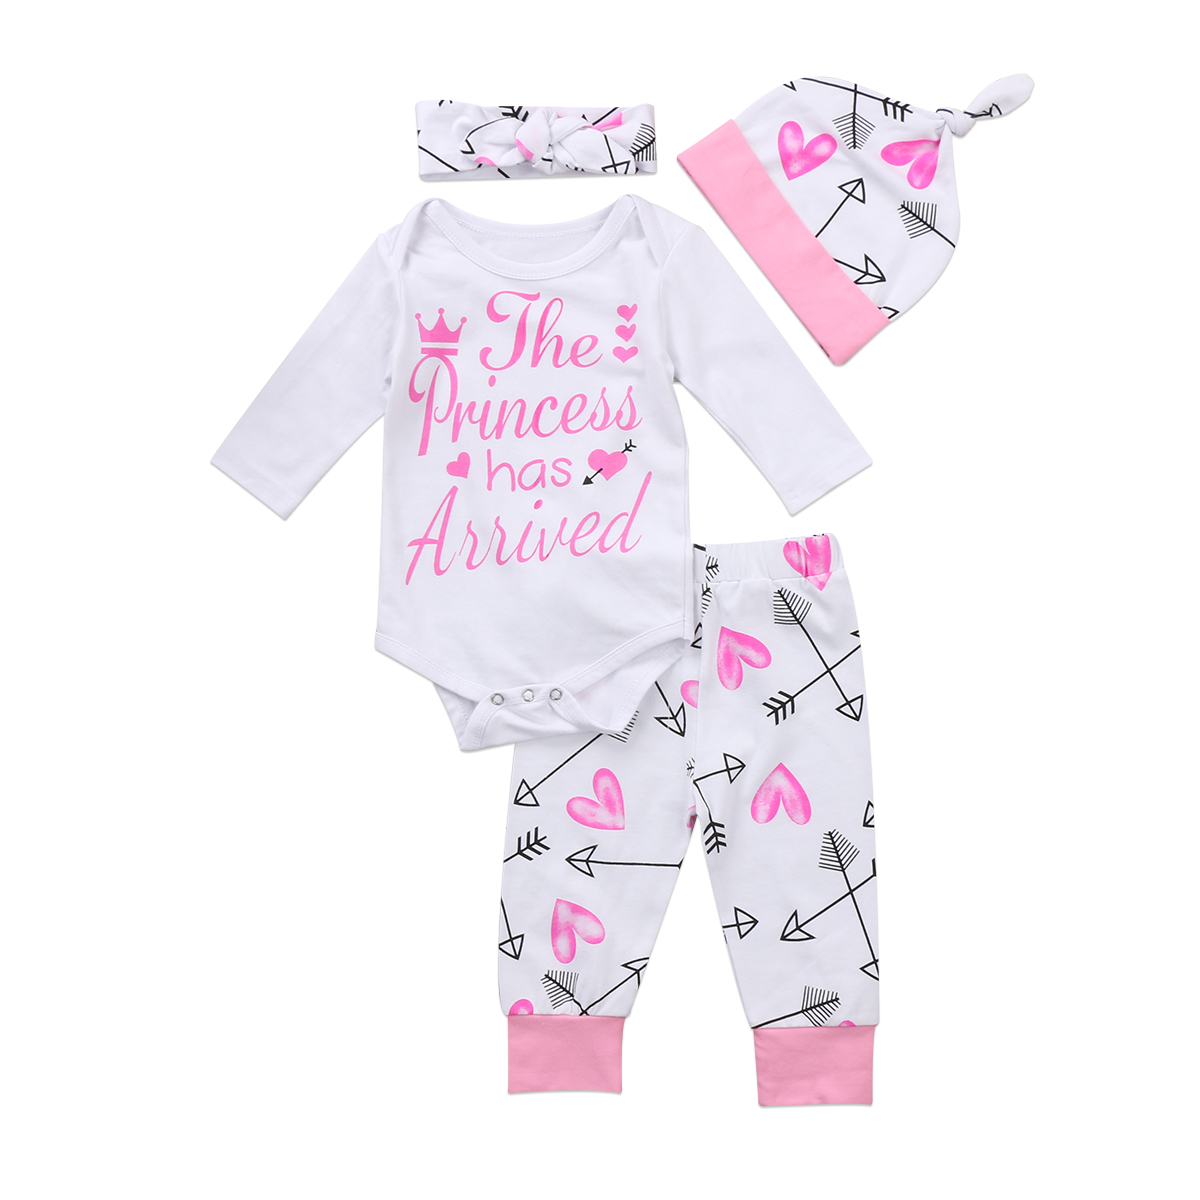 New Fashion 4PCS Newborn Infant Baby Girls Clothes Playsuit Romper Pants Long Sleeve Pant Hat Headband Outfit Set